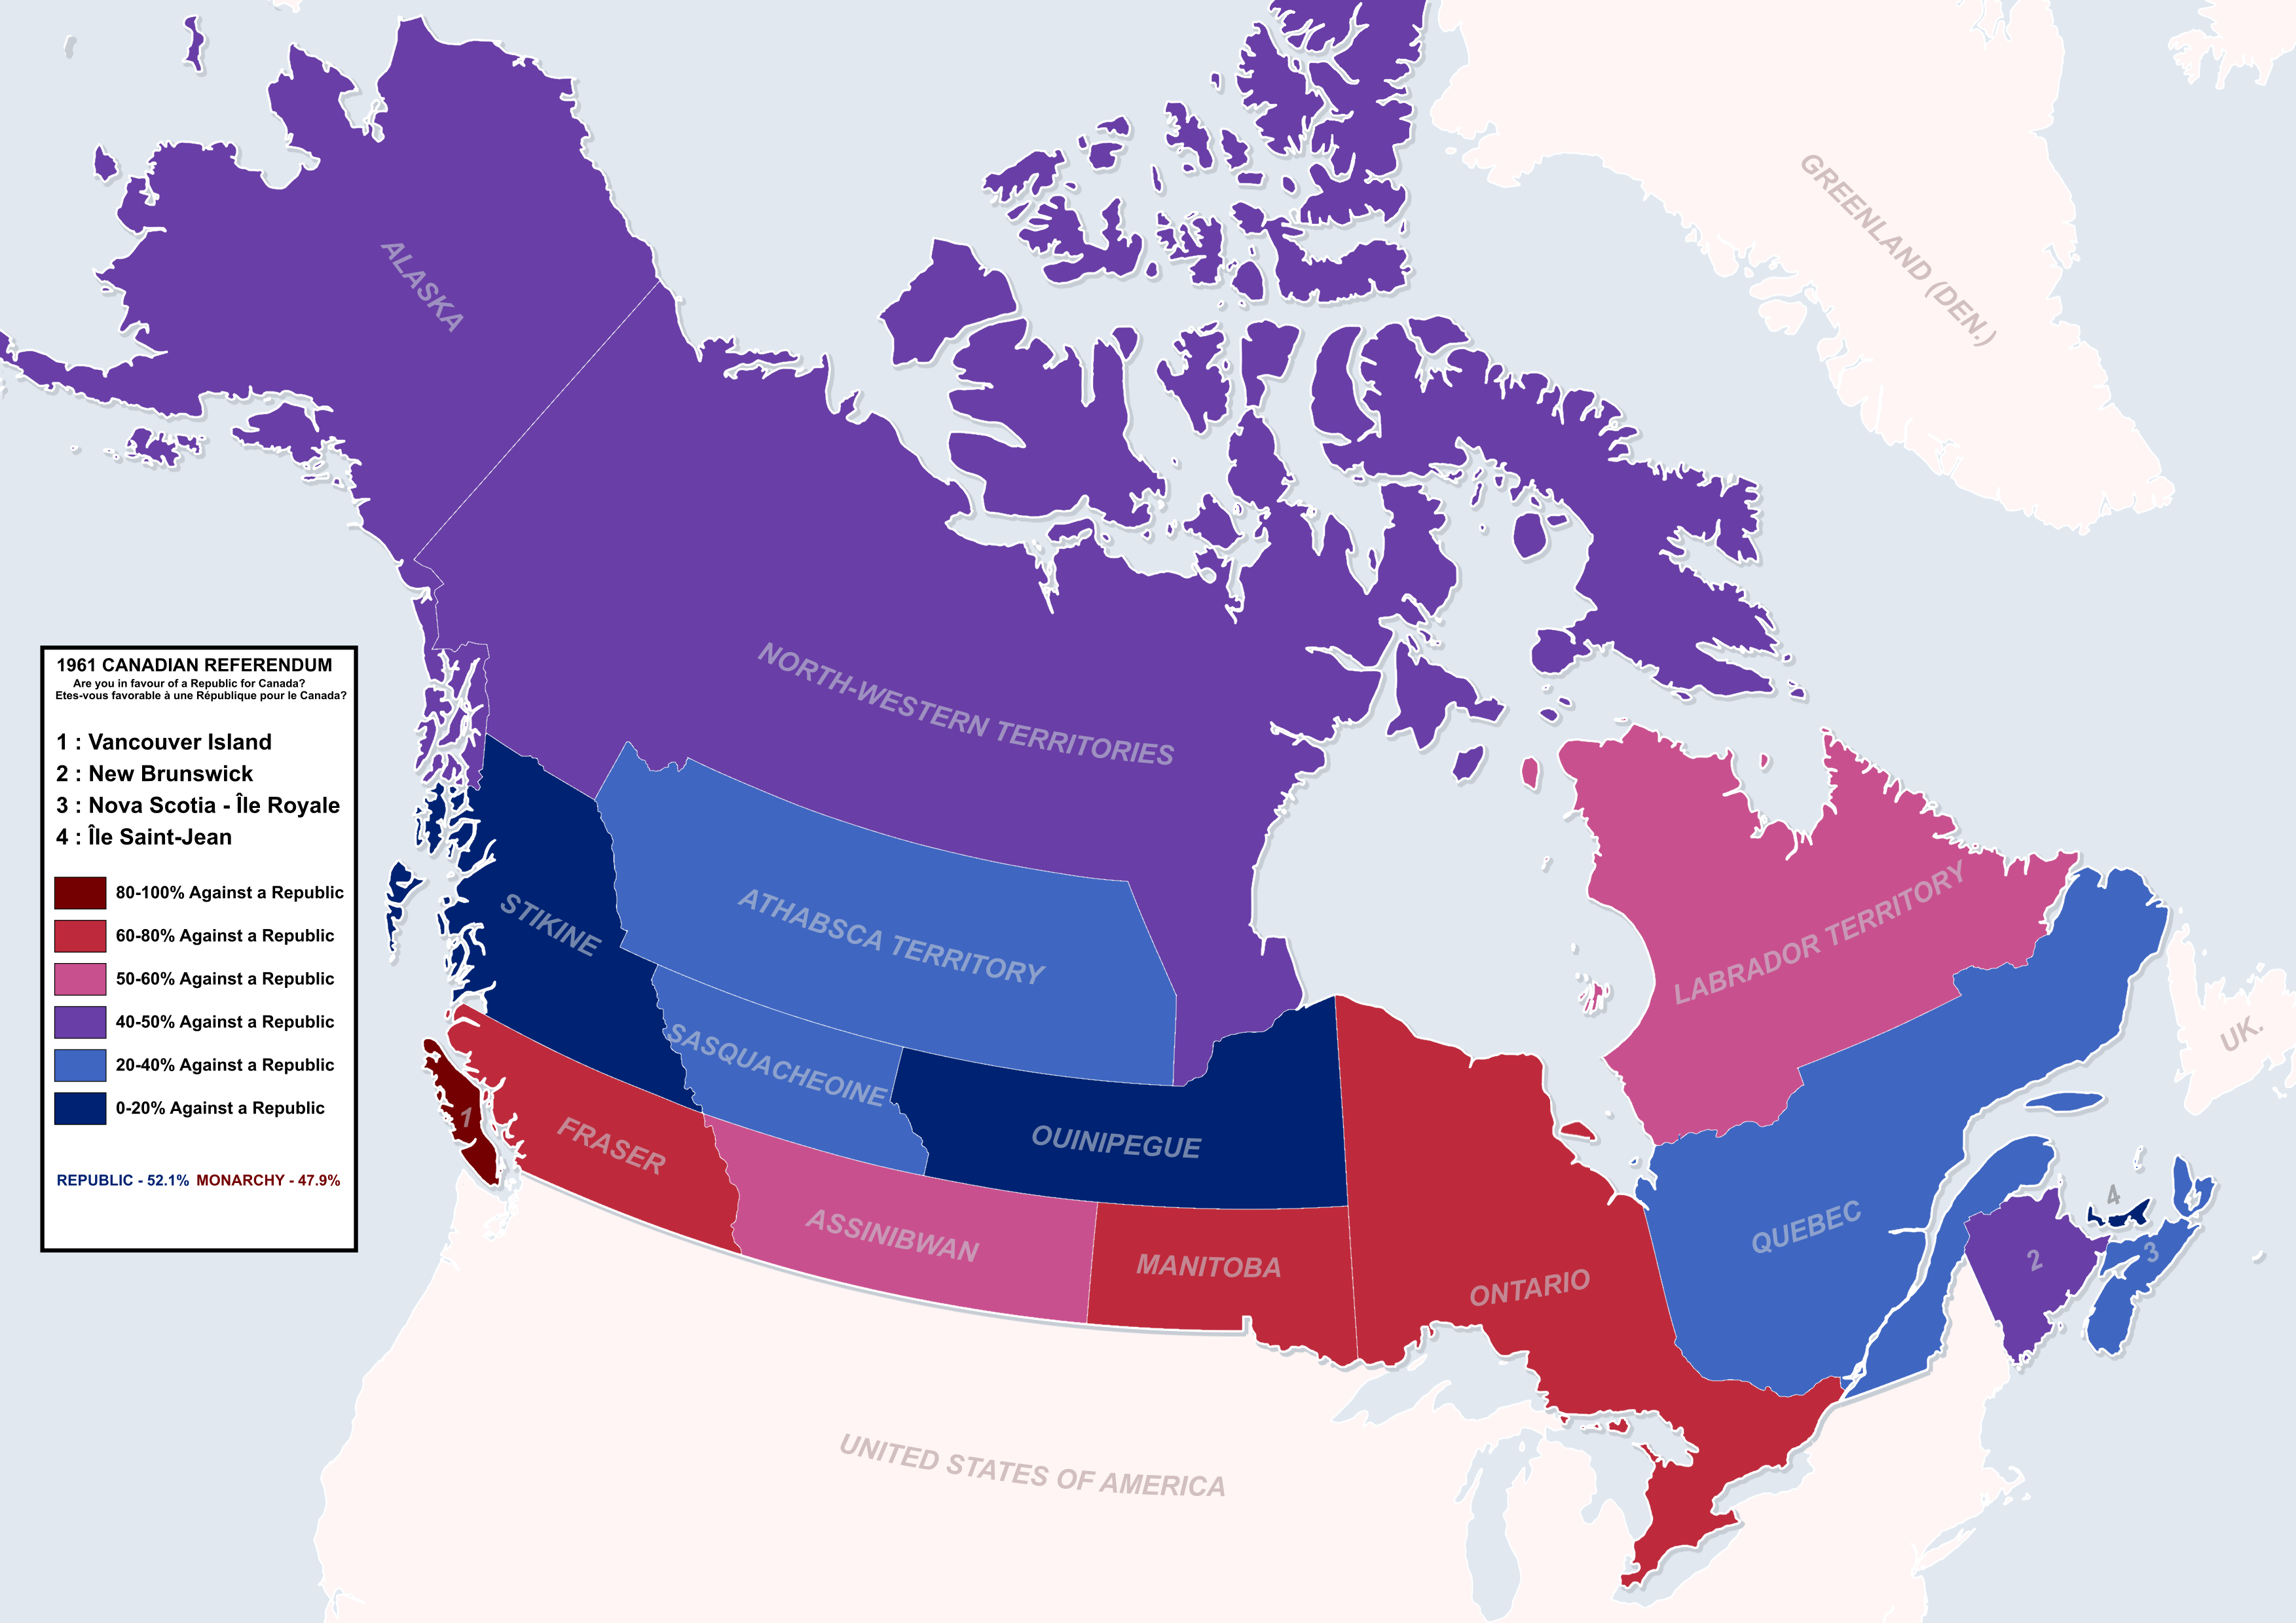 English Speaking Canada Map 1961 Canadian Republic Referendum   Canada with equal French and